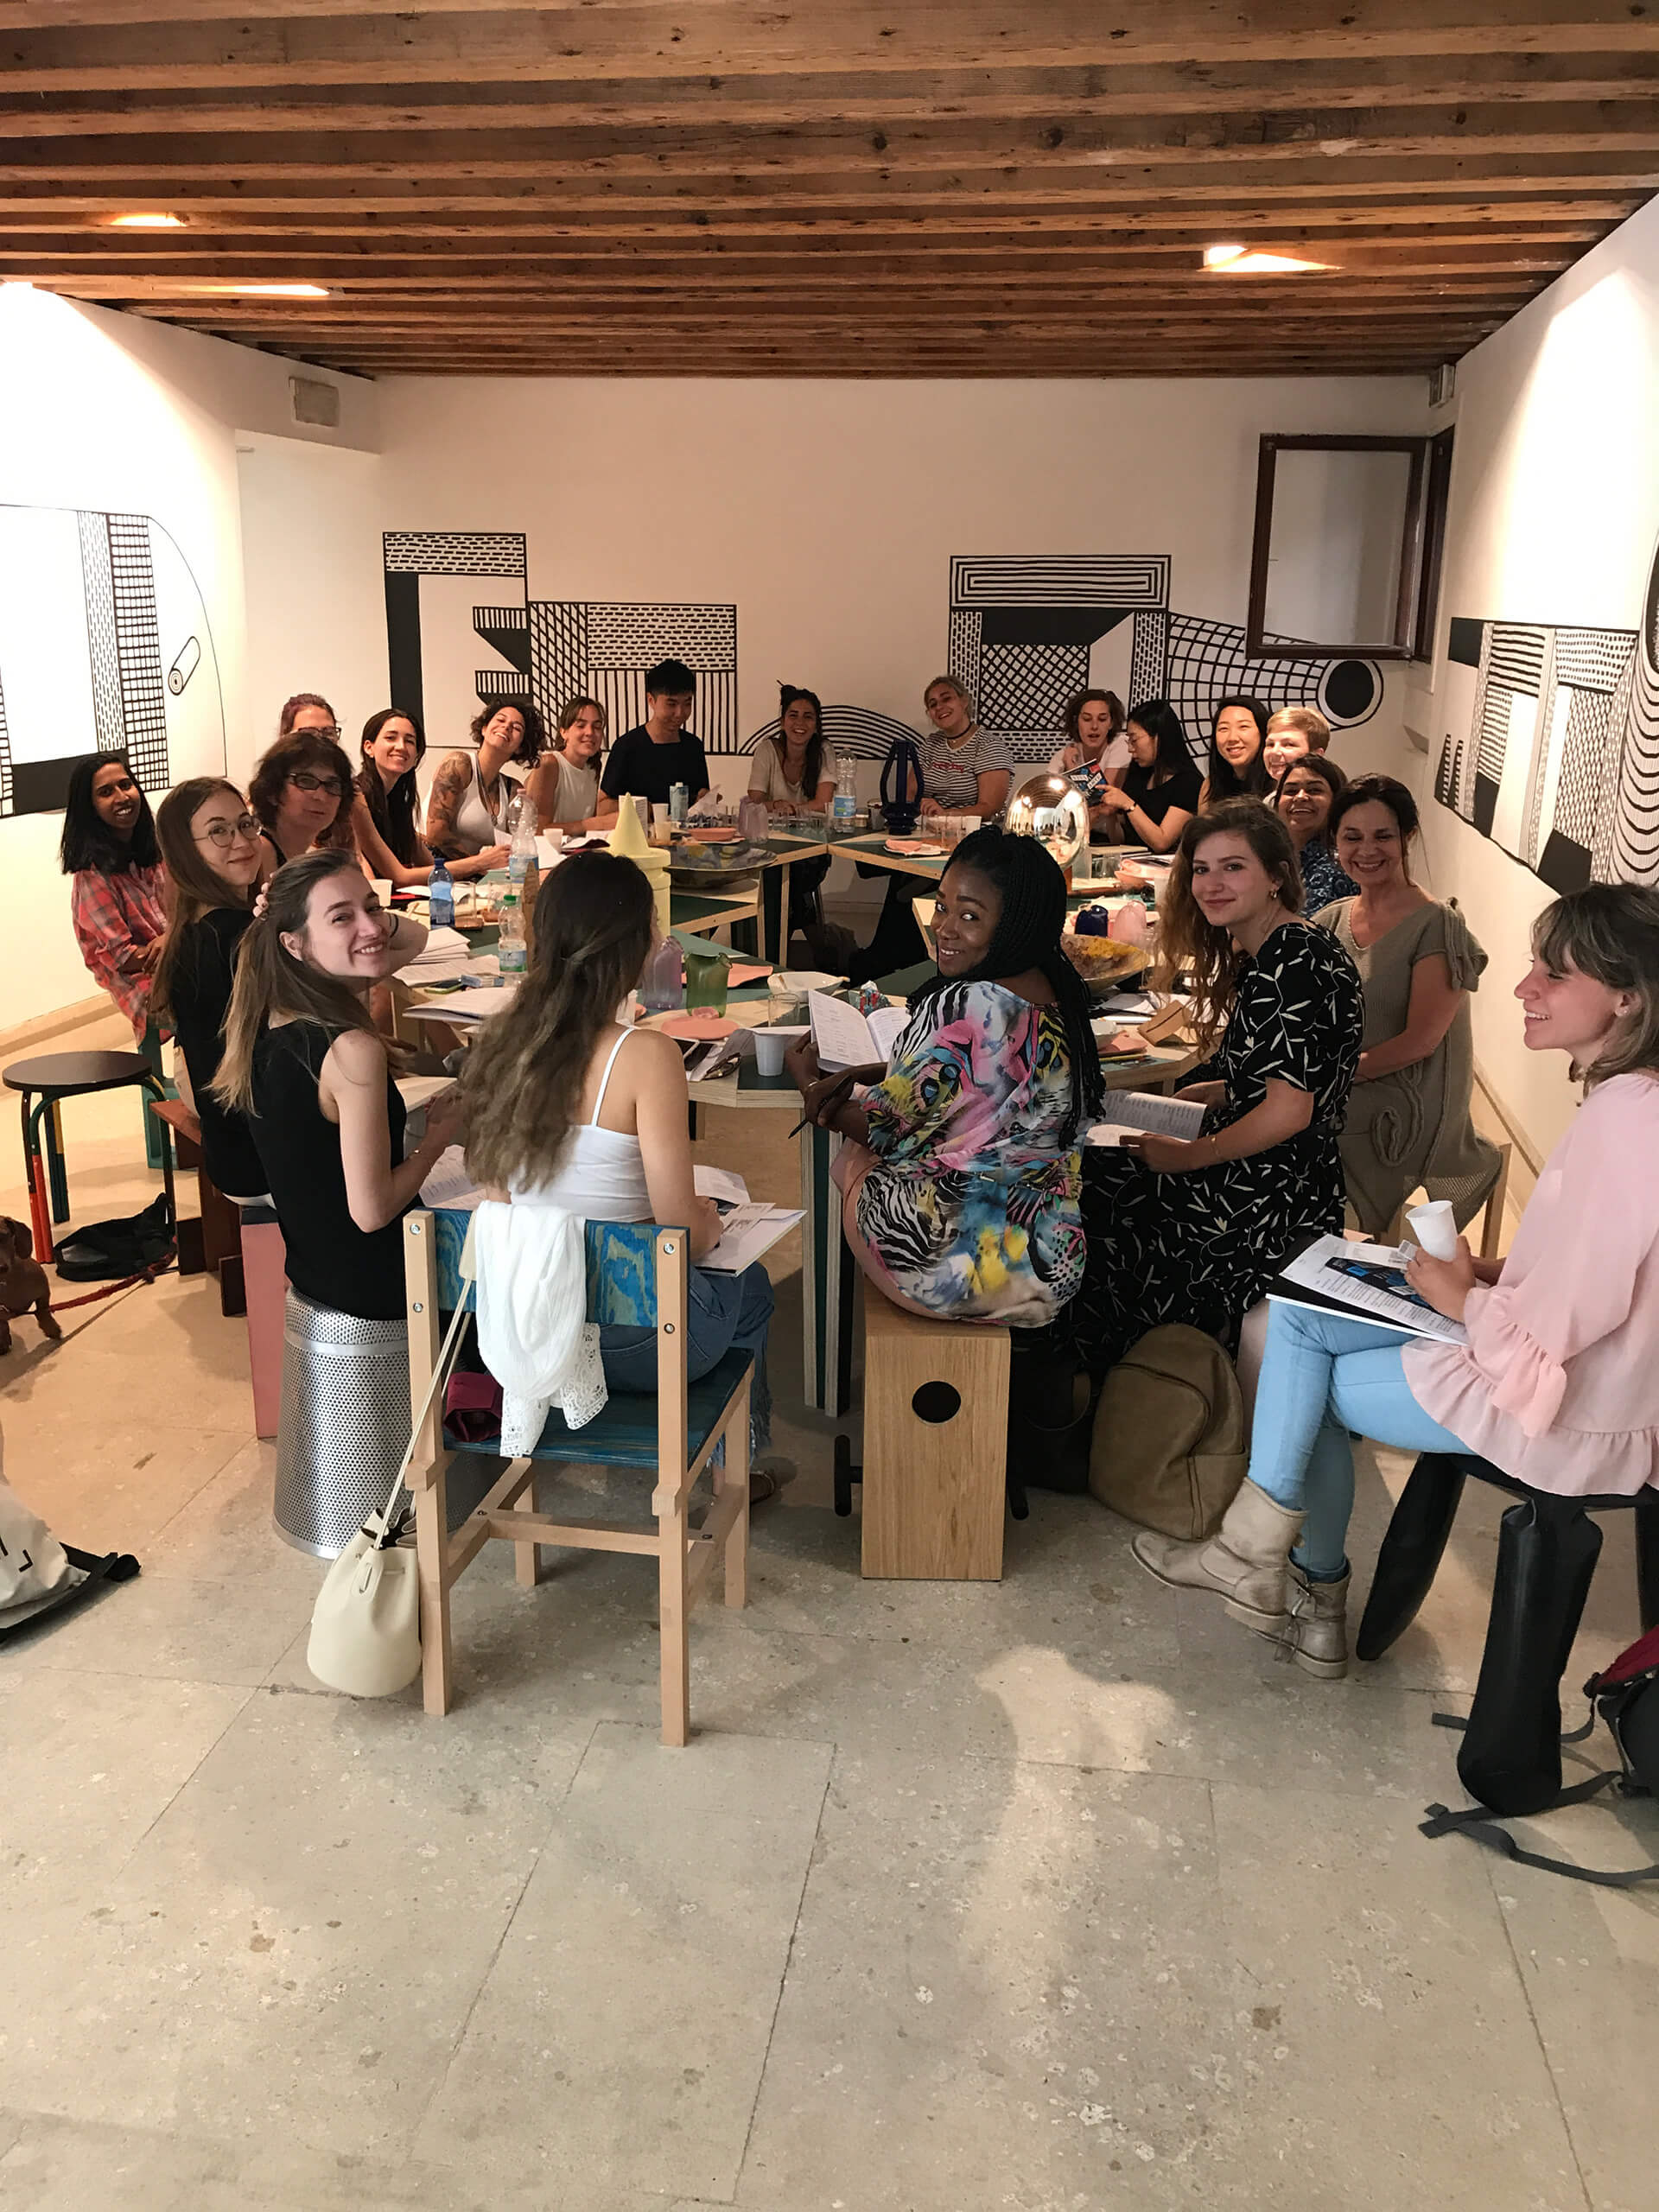 The participants for School for Curatorial Studies Venice (2018) | Venice reopens post COVID-19 lockdown | STIRworld